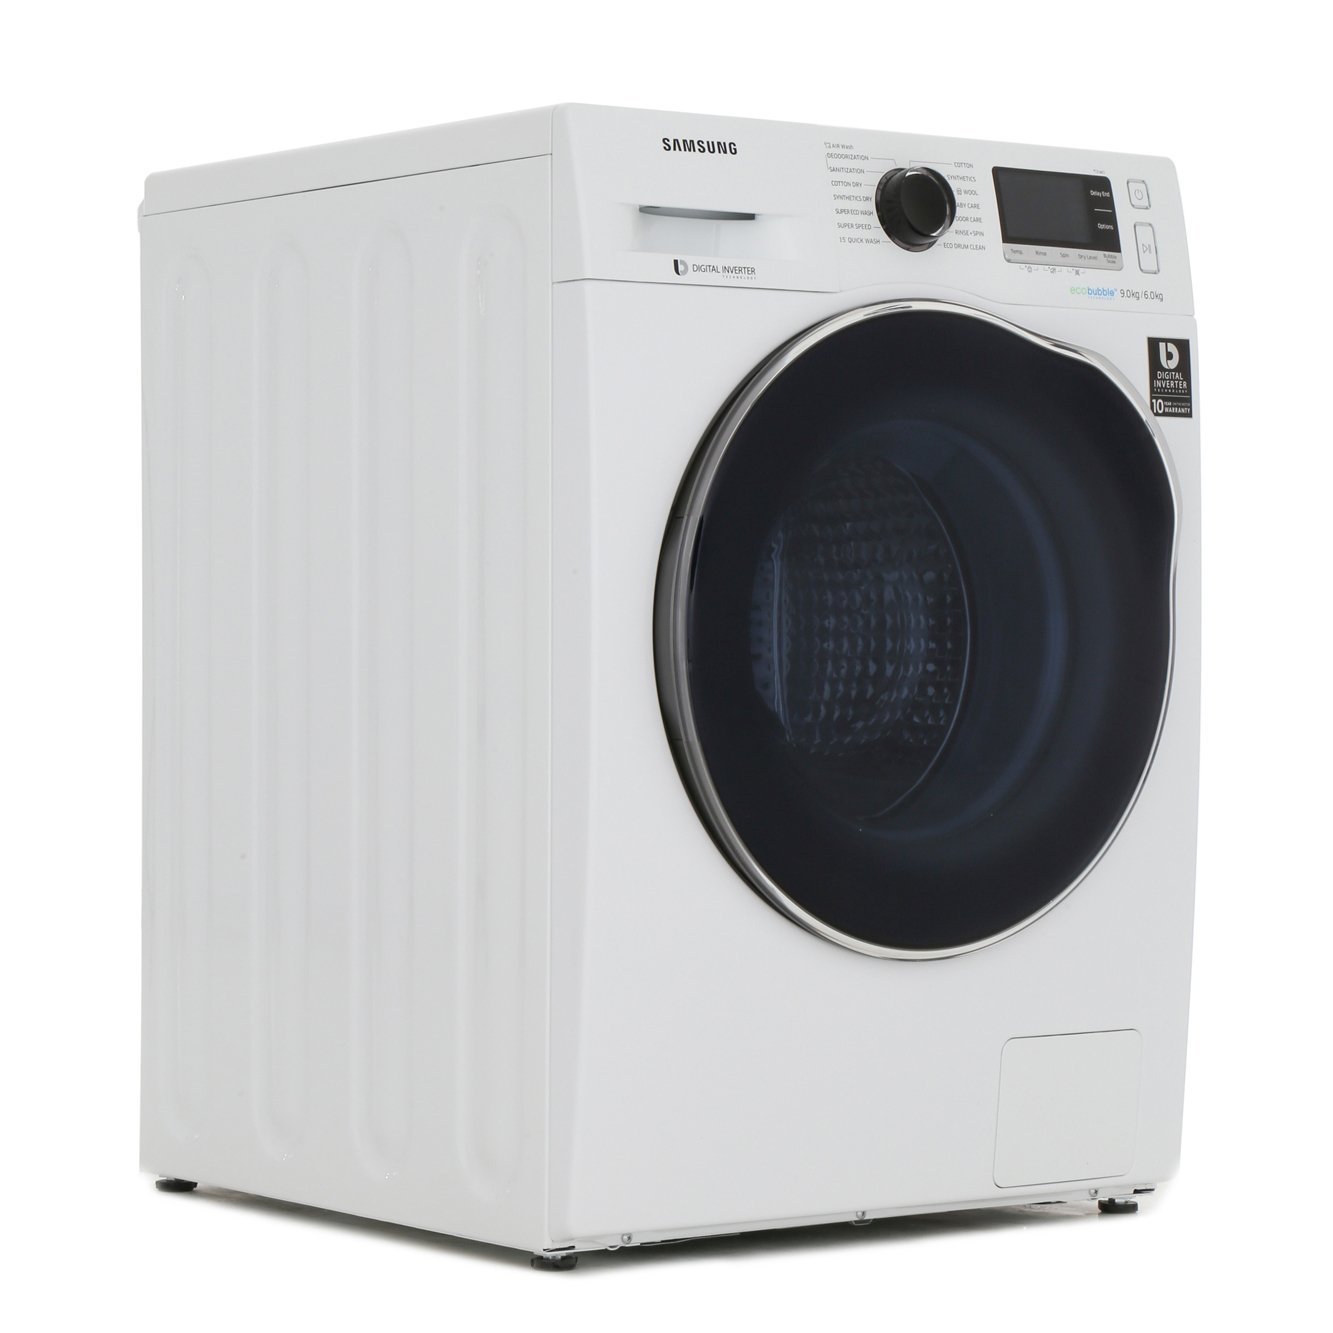 Samsung WD6000 WD90J6A10AW 9Kg  Washer Dryer with Ecobubble Technology